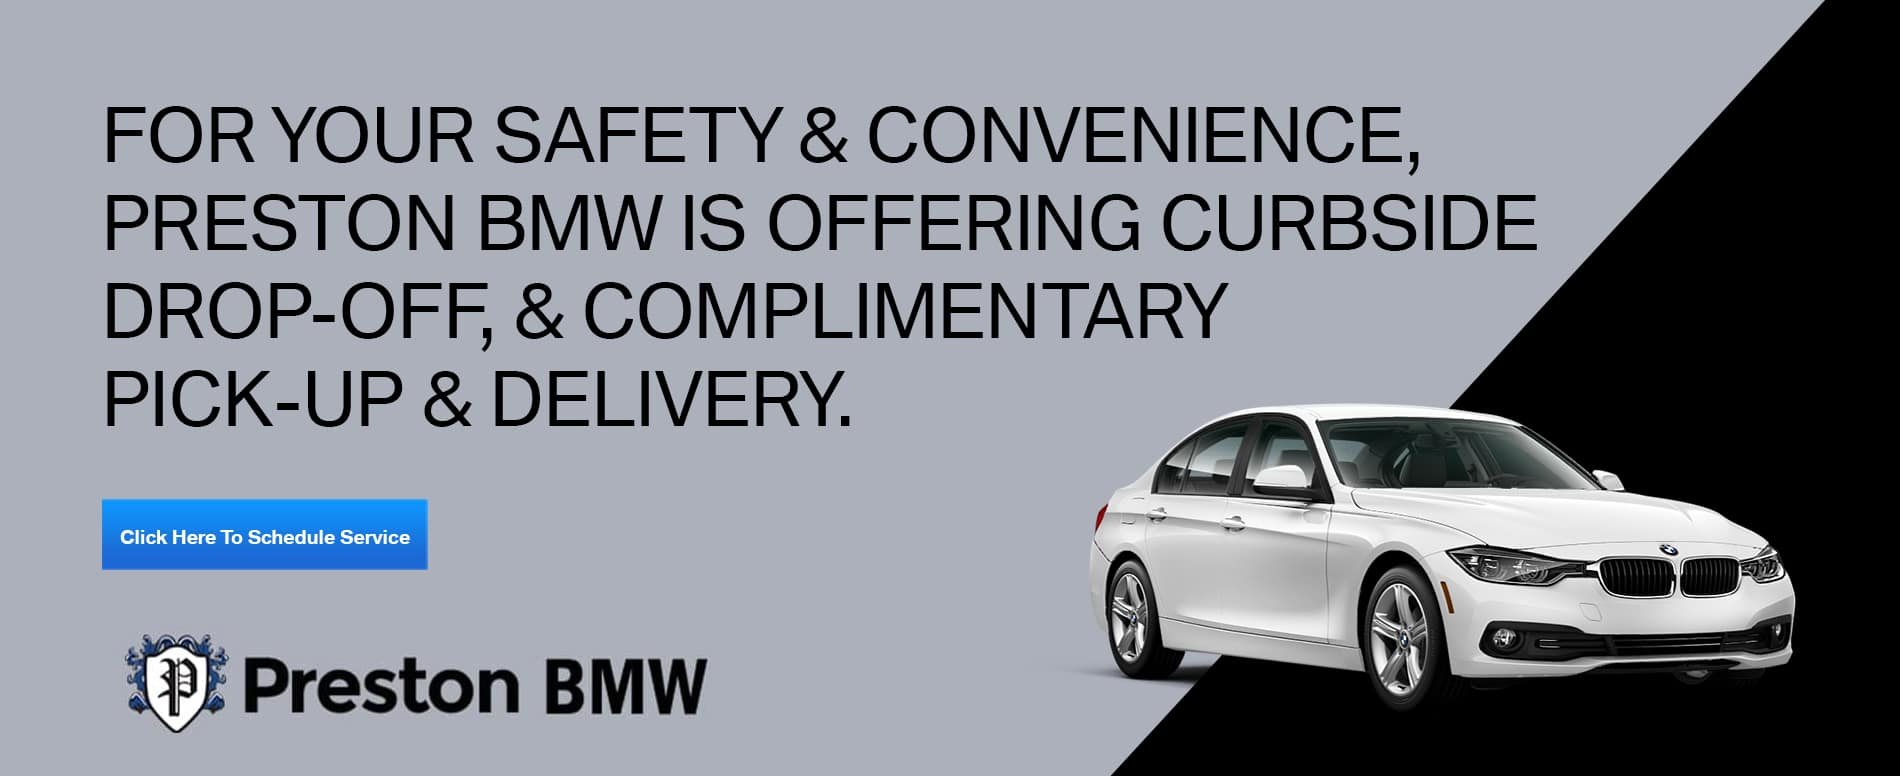 Complimentary pick-up and drop-off at Preston BMW. Image of white 3 series with grey and black background.